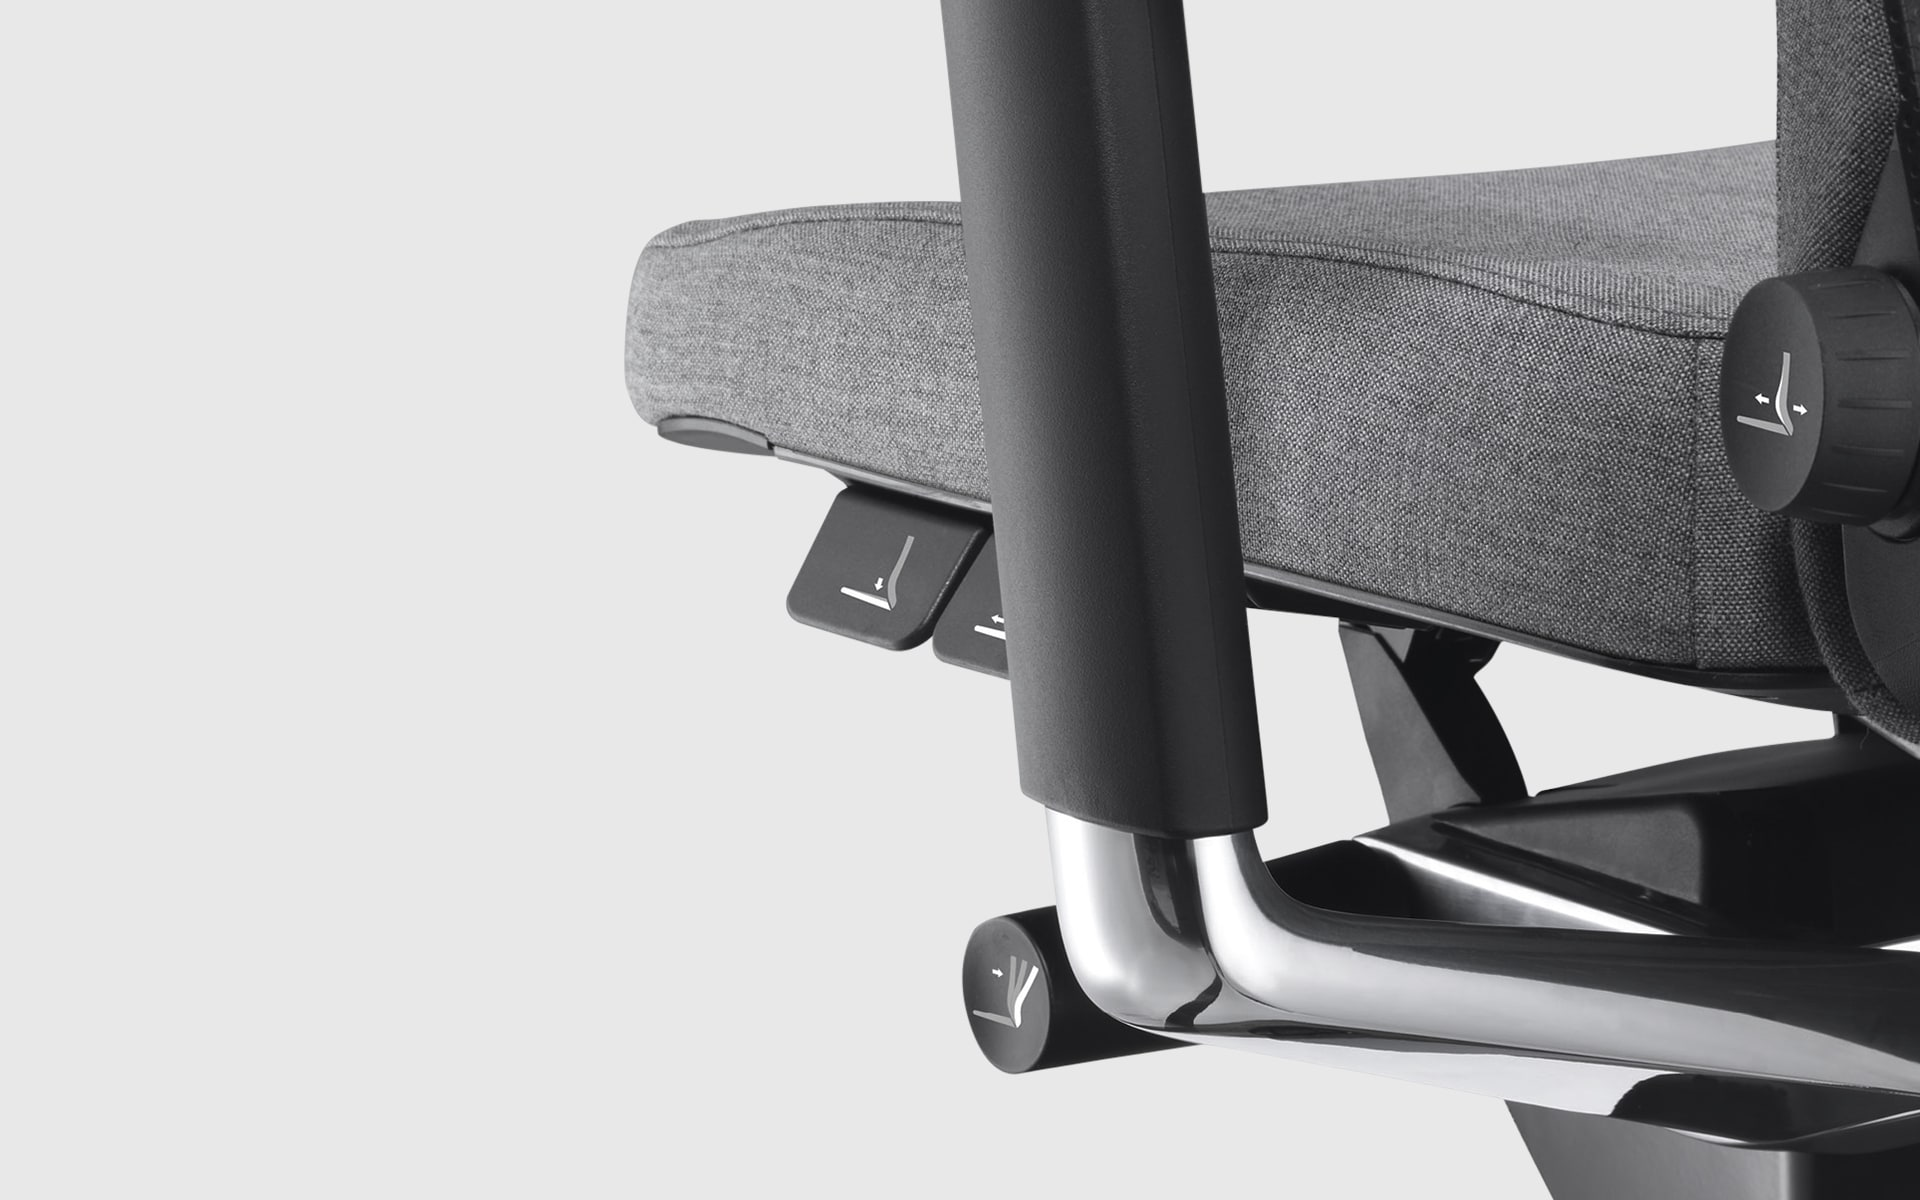 Close-up of the ergonomic adjustment options of the König + Neurath Lamiga office chair by ITO Design